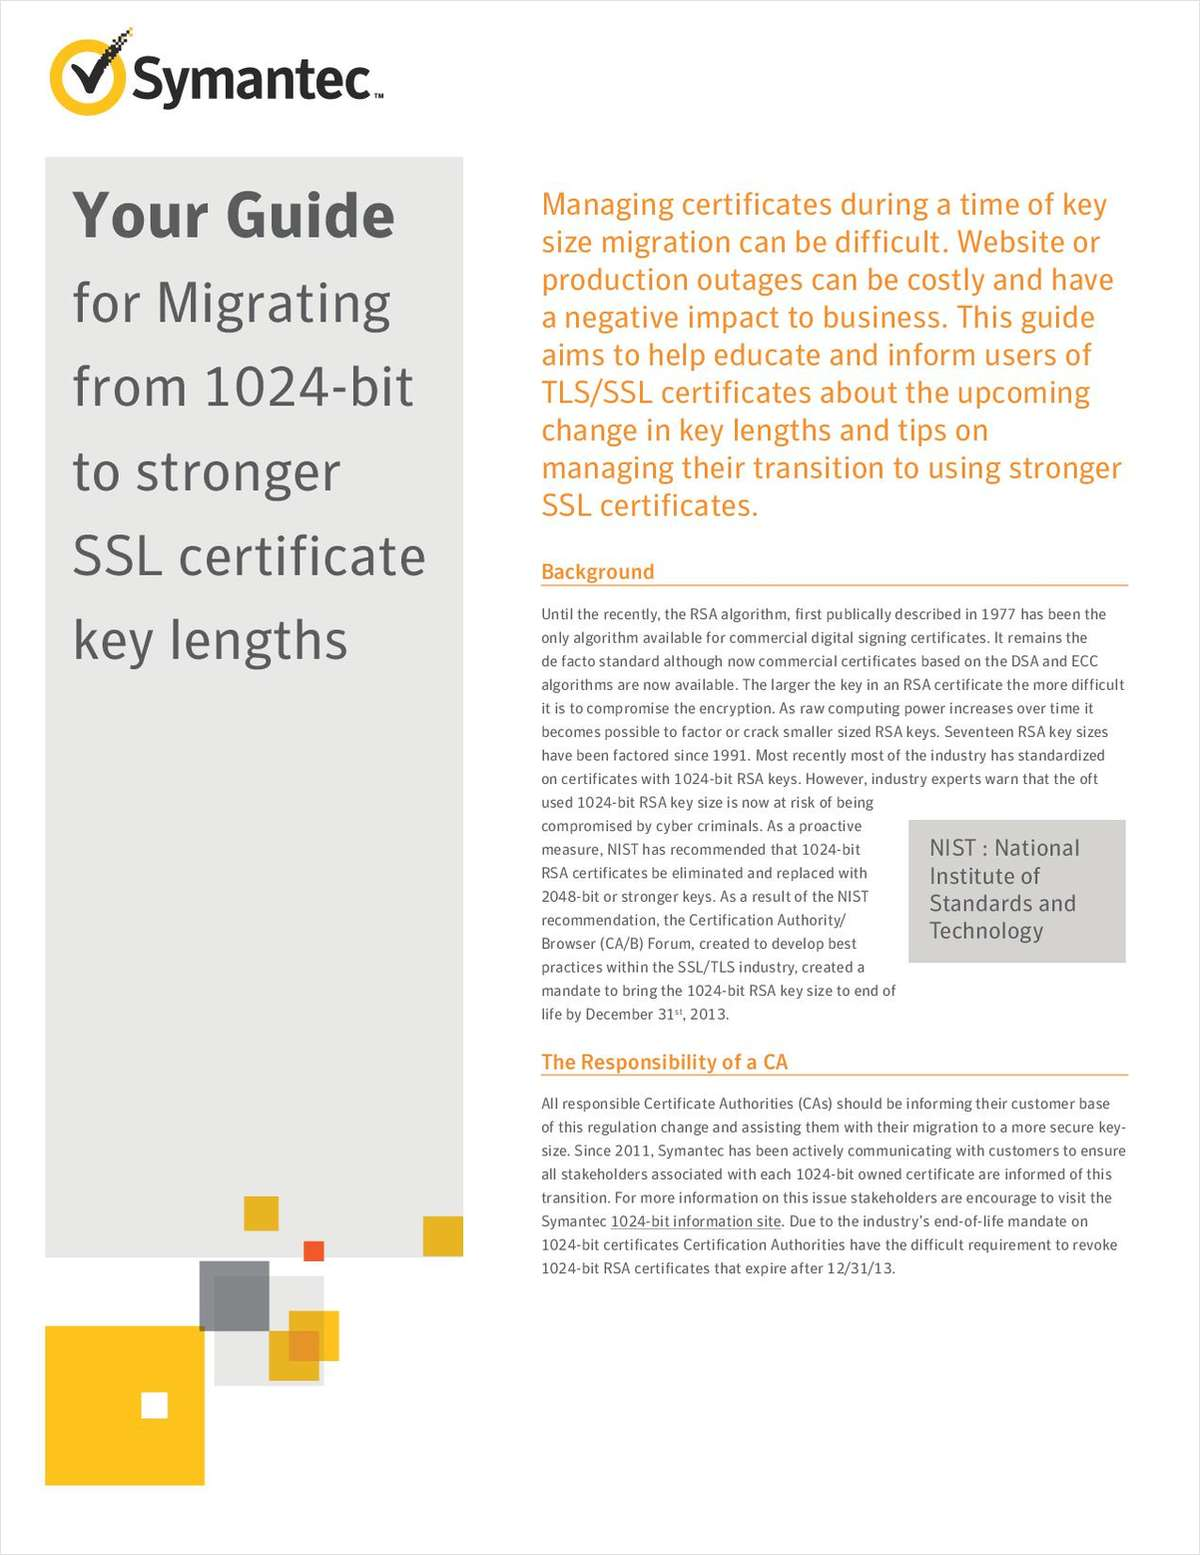 Your Guide for Migrating from 1024-Bit to Stronger SSL Certificate Key Lengths